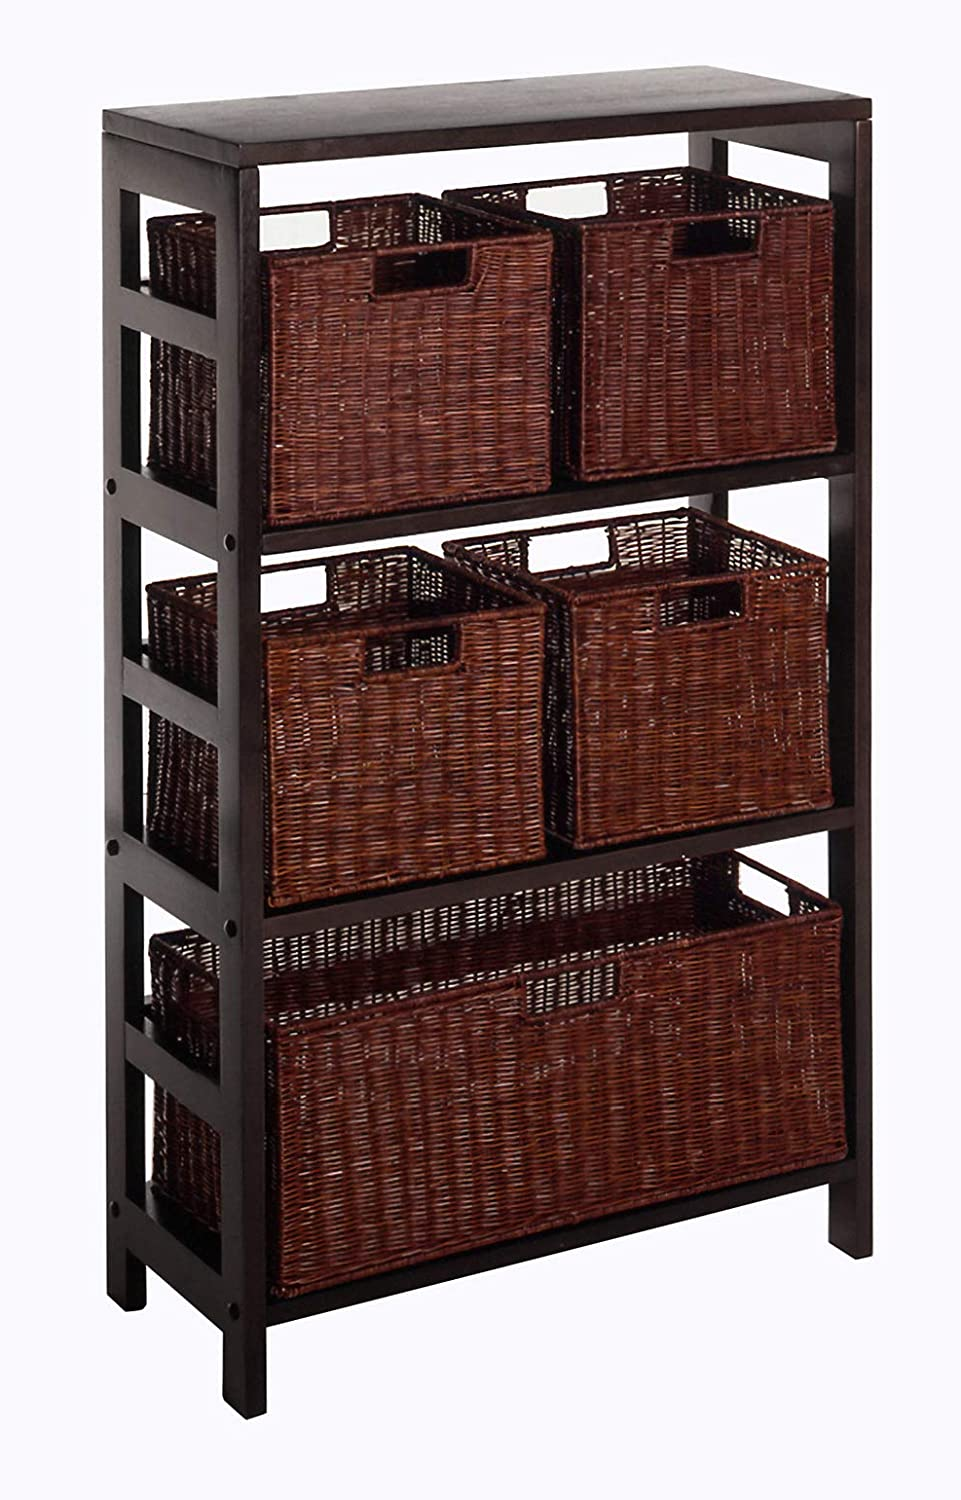 Winsome Wood Leo 4 Tier Shelf with lar low-pricing Rattan Baskets 1 New product type - 5